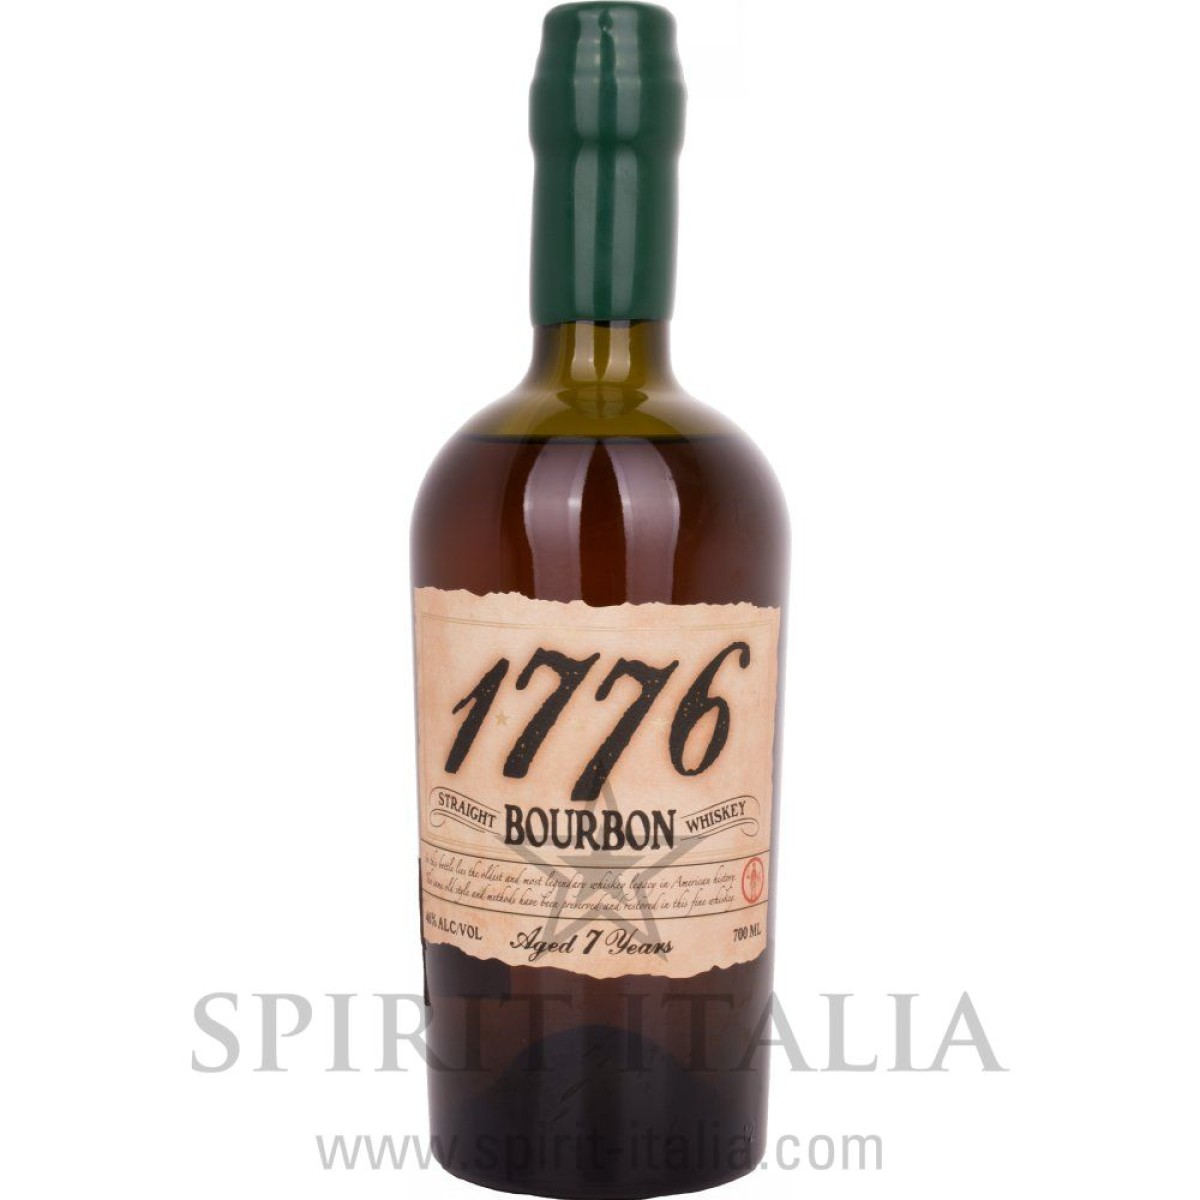 1776 Straight Bourbon Whiskey Aged 7 Years